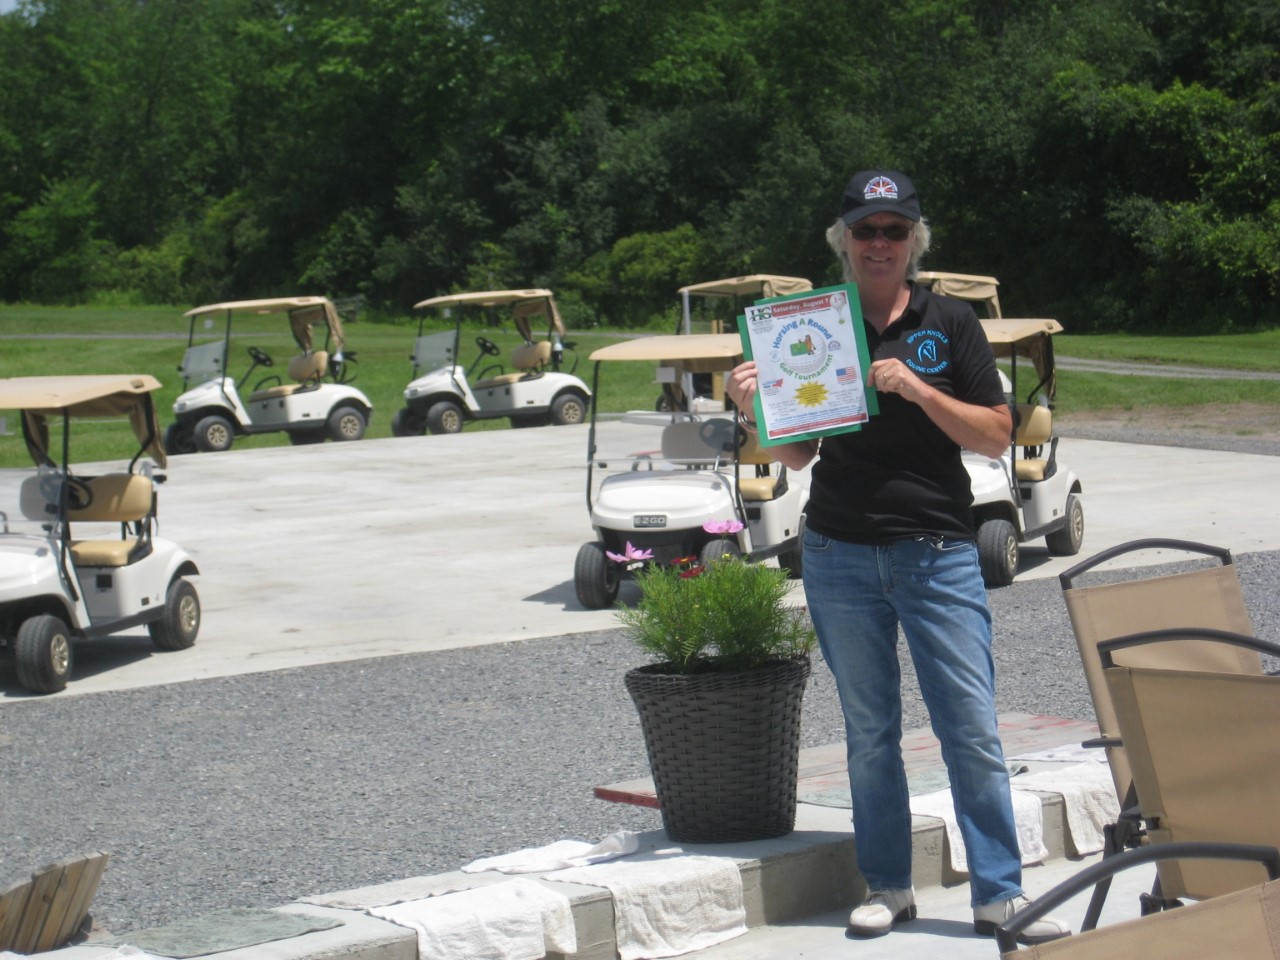 Contact Roxanne Peck to register for the Nipper Knolls Golf Tournament to be held at Hartford Greens Country Club on August 7, 2021.